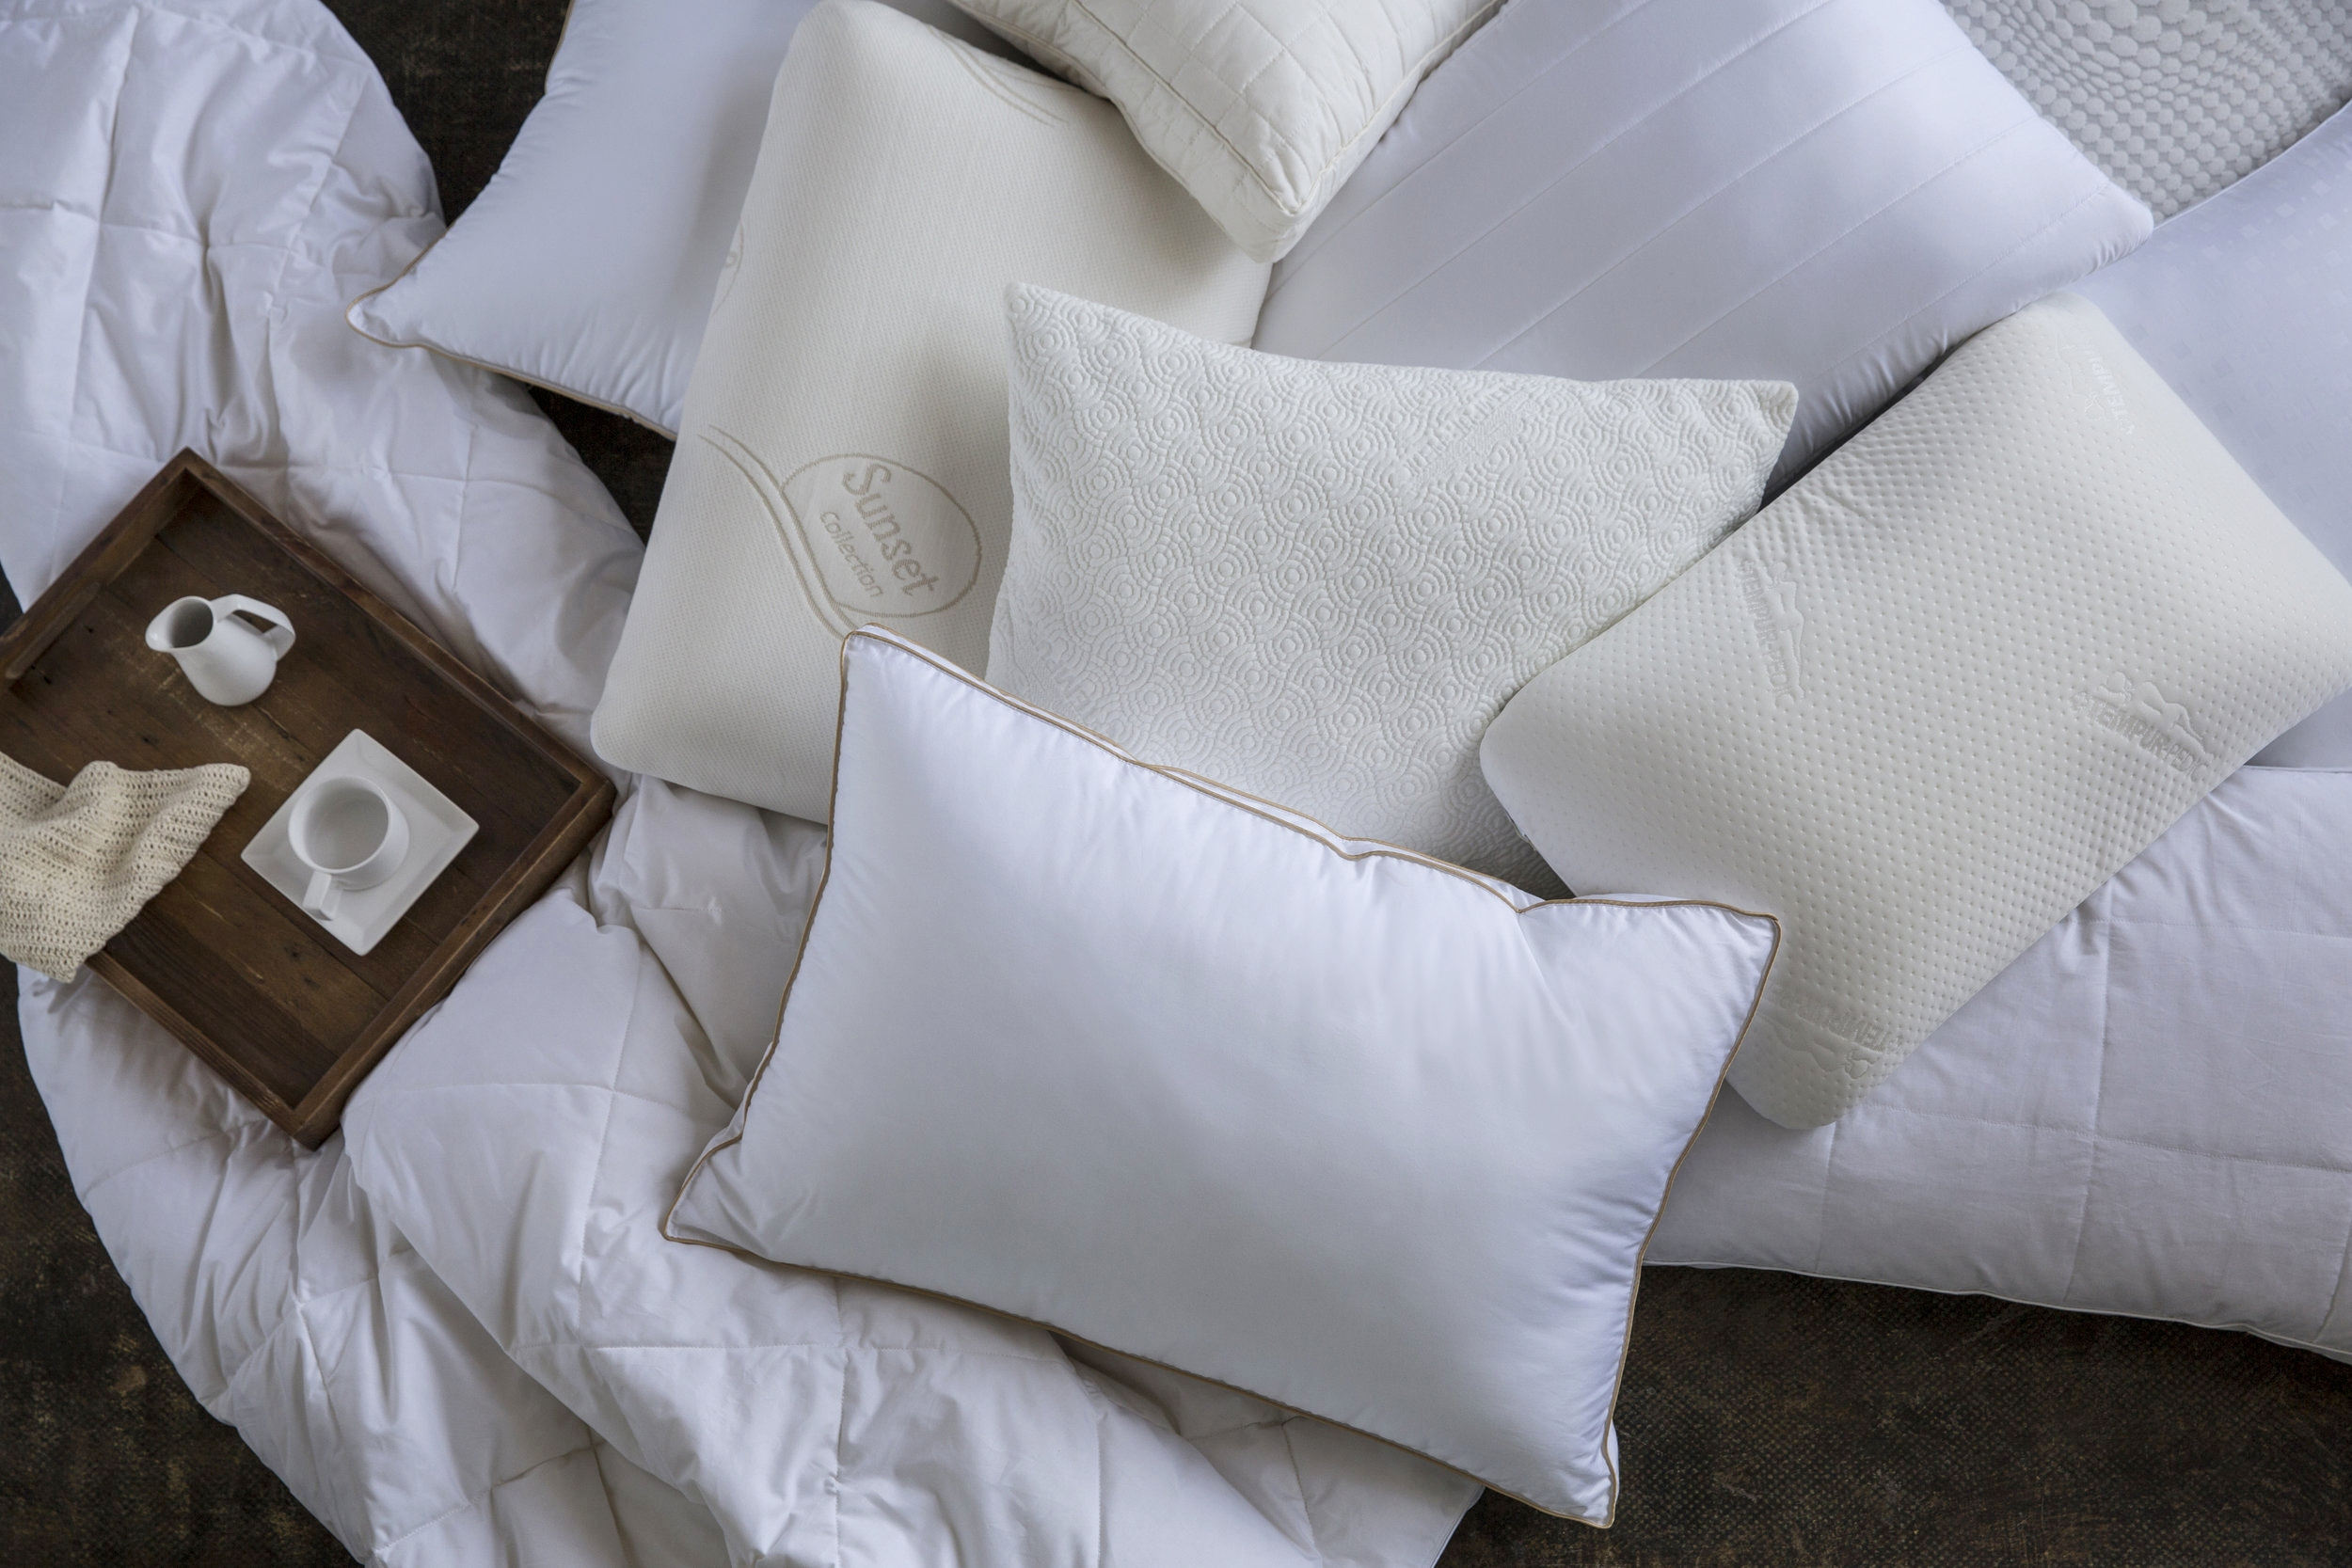 bedding - We produced  imagery to illuminate the loveliness of pillows, the suppleness of linens and their colorways. These were concepted not only to illustrate the quality of the bedding, but to define a more broad target market and to have aspirational images for social sharing.